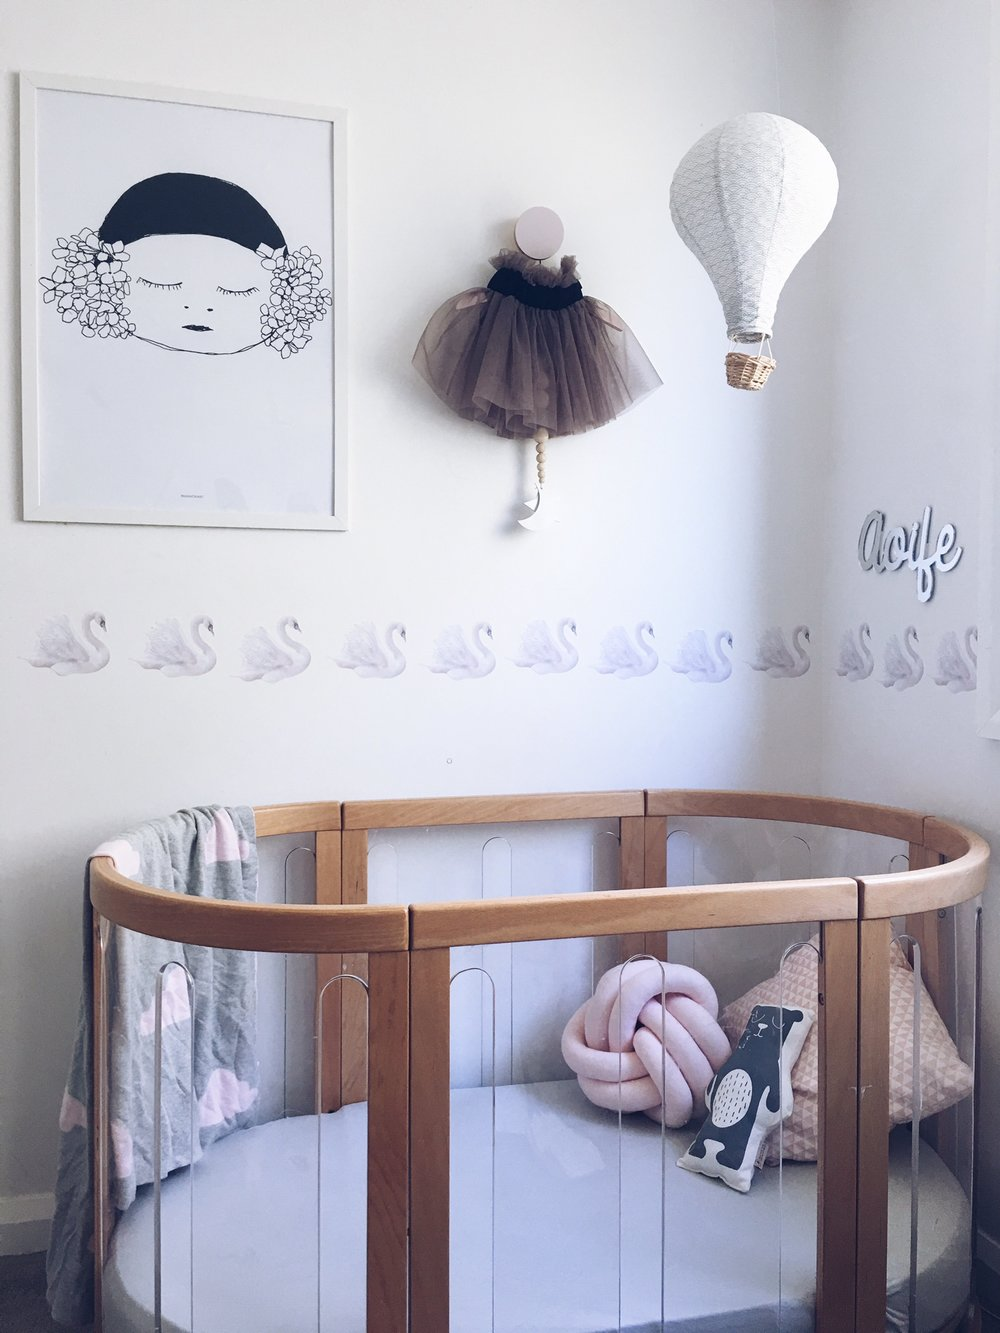 Pax and Hart print, Hubble and Duke skirt and Pocketful Designs drop, Cam Cam lamp shade from Dane Studio, swan decals and mirror name plate from Arlo and Co, cot by Babyhood.